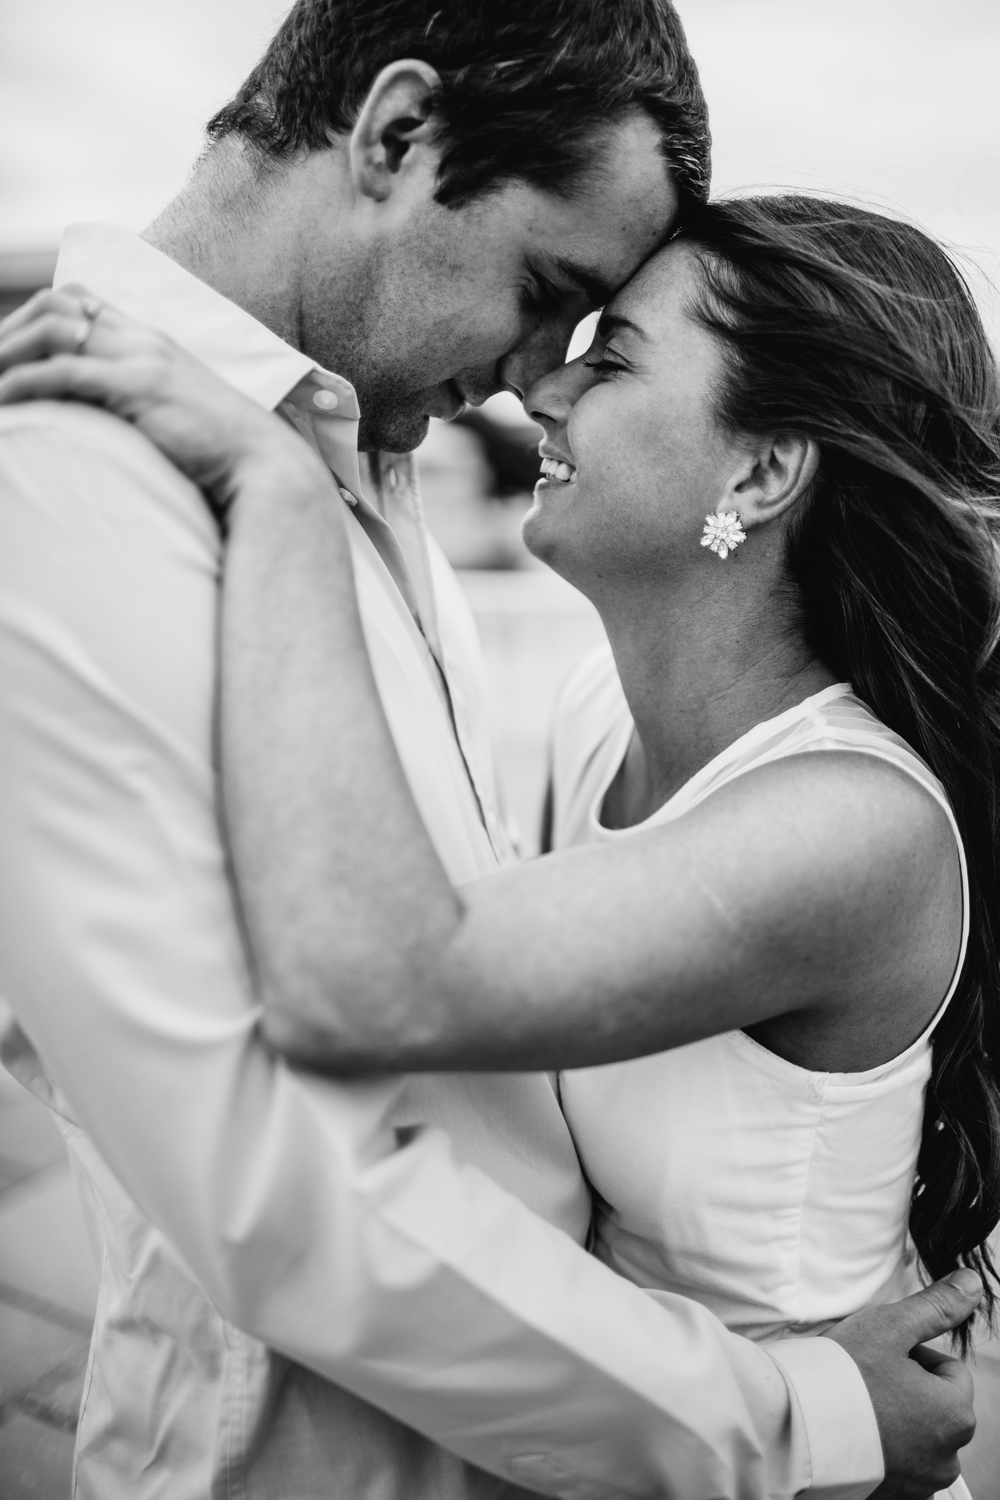 BRITTANYandKEVIN-Engagement2015 (35 of 115).jpg